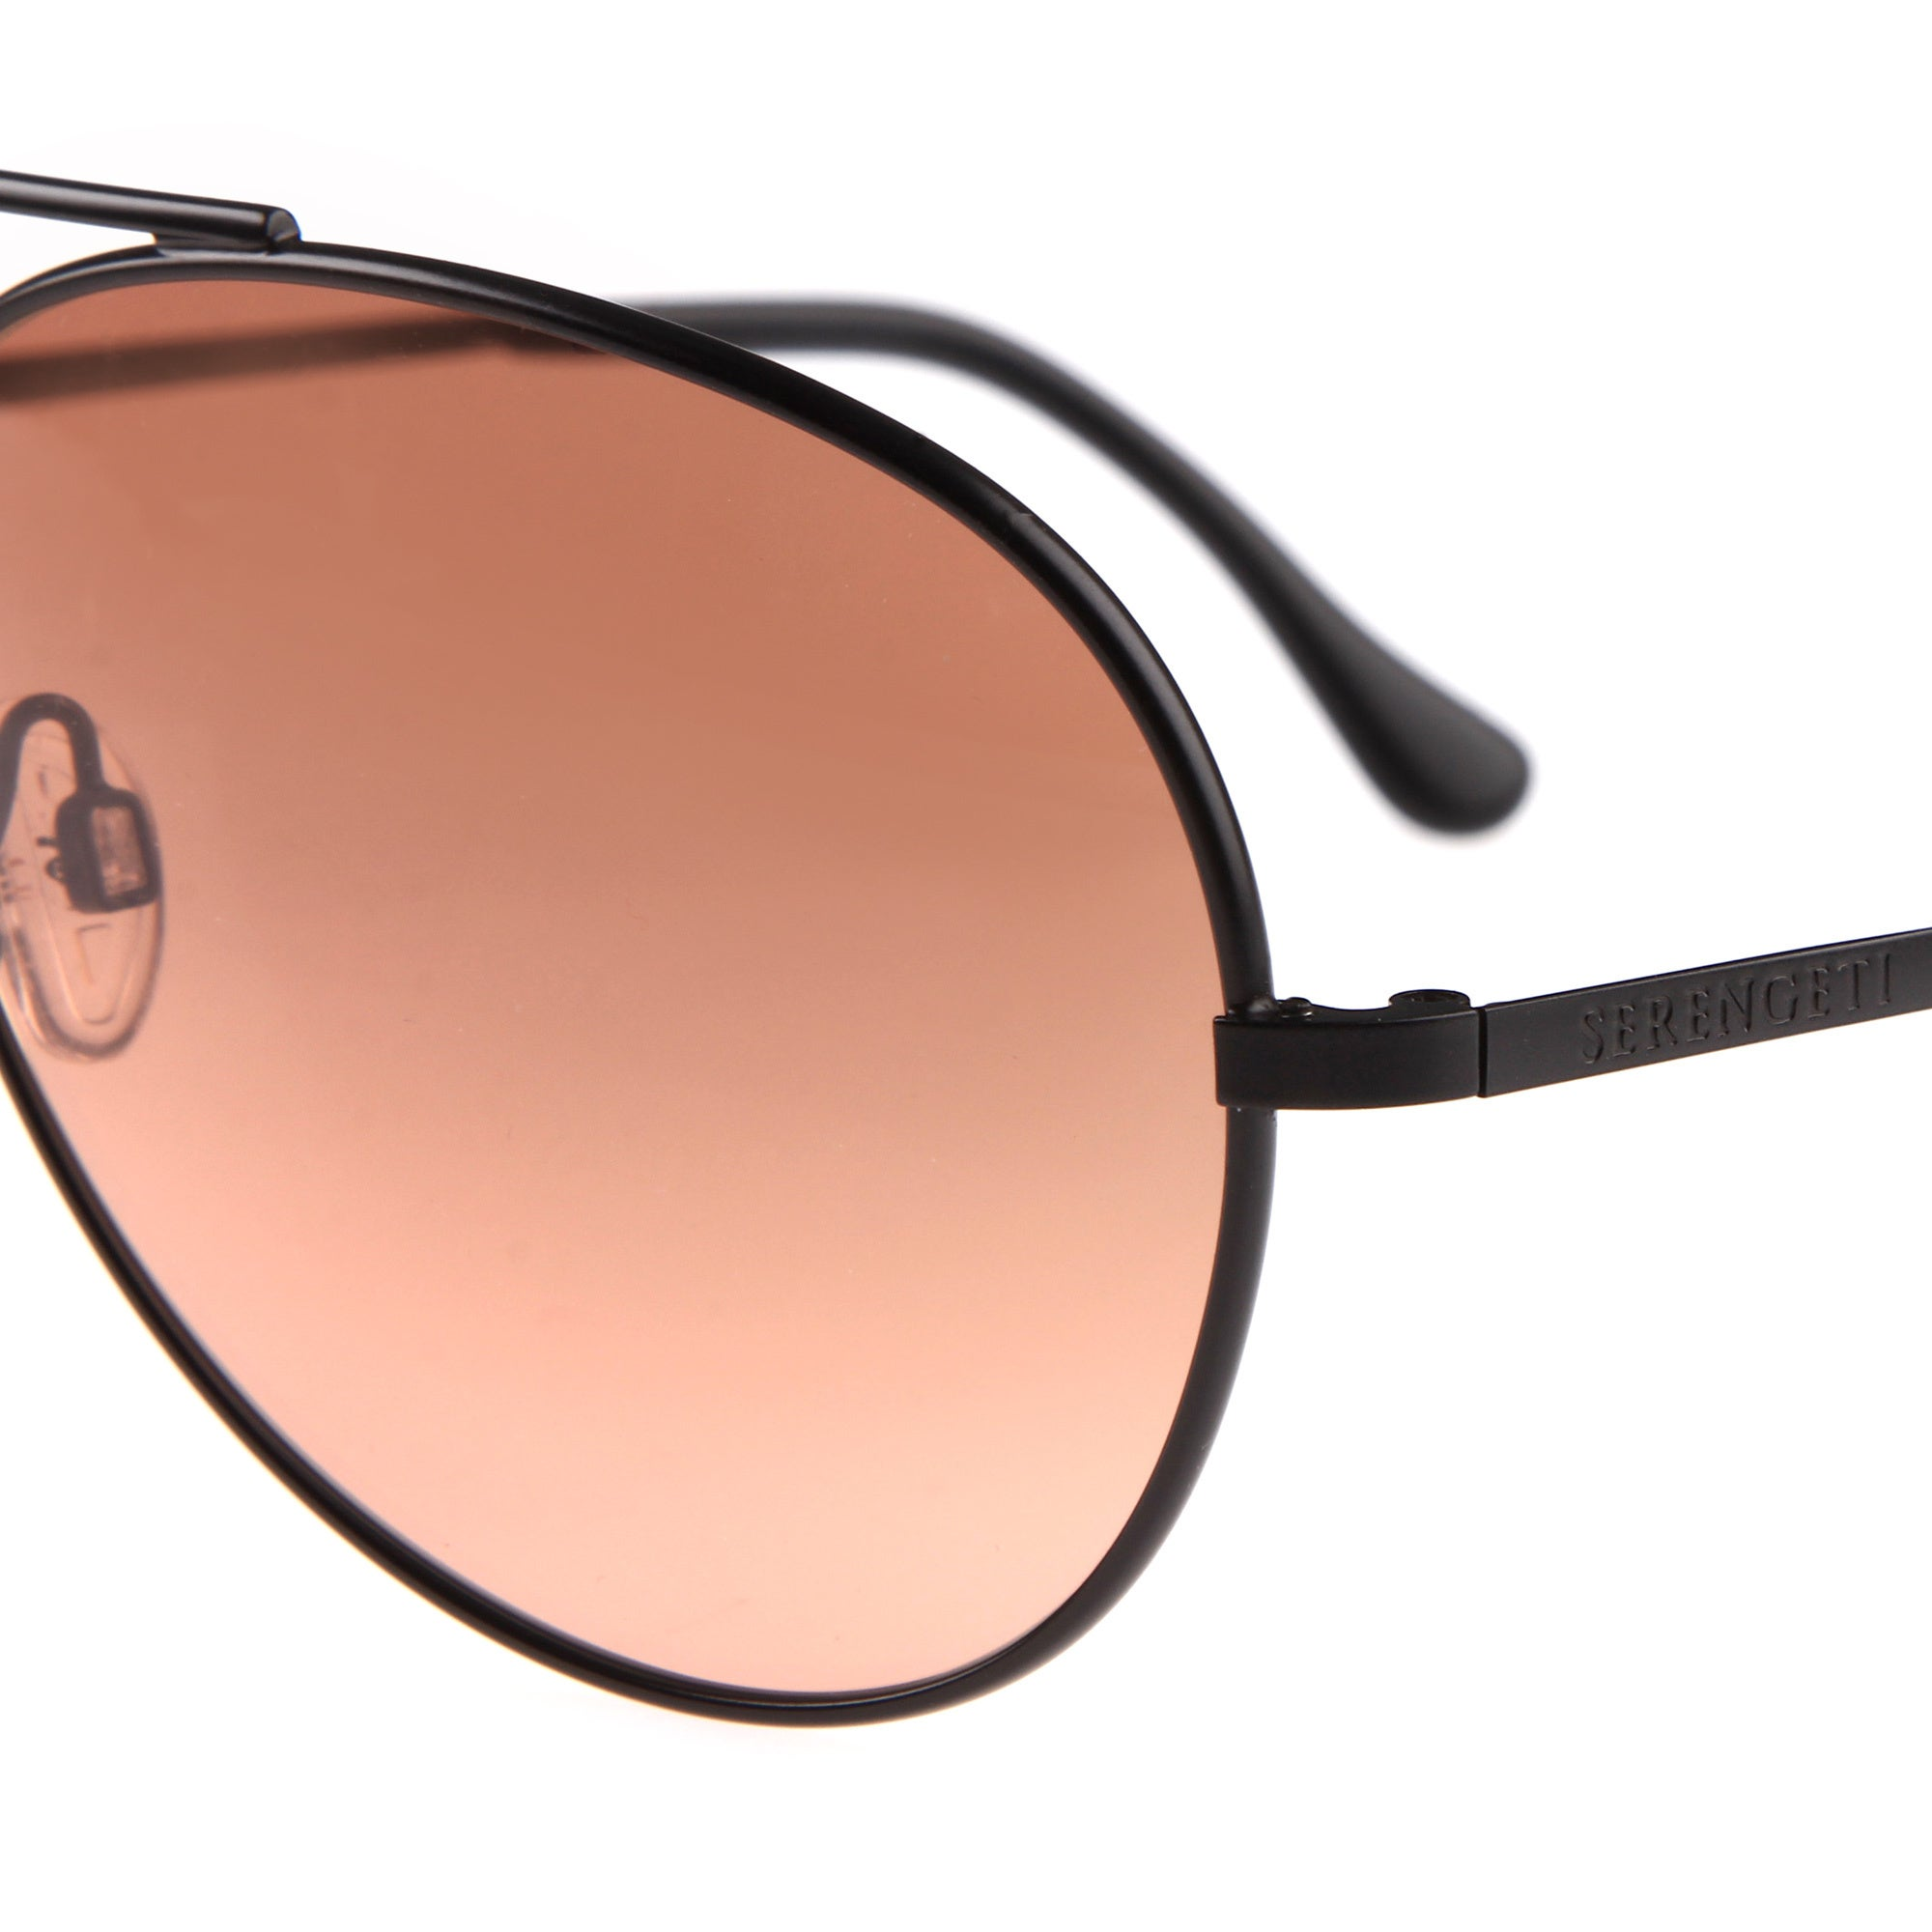 d951715abed0 Serengeti Aviator Sunglasses 5222 « One More Soul